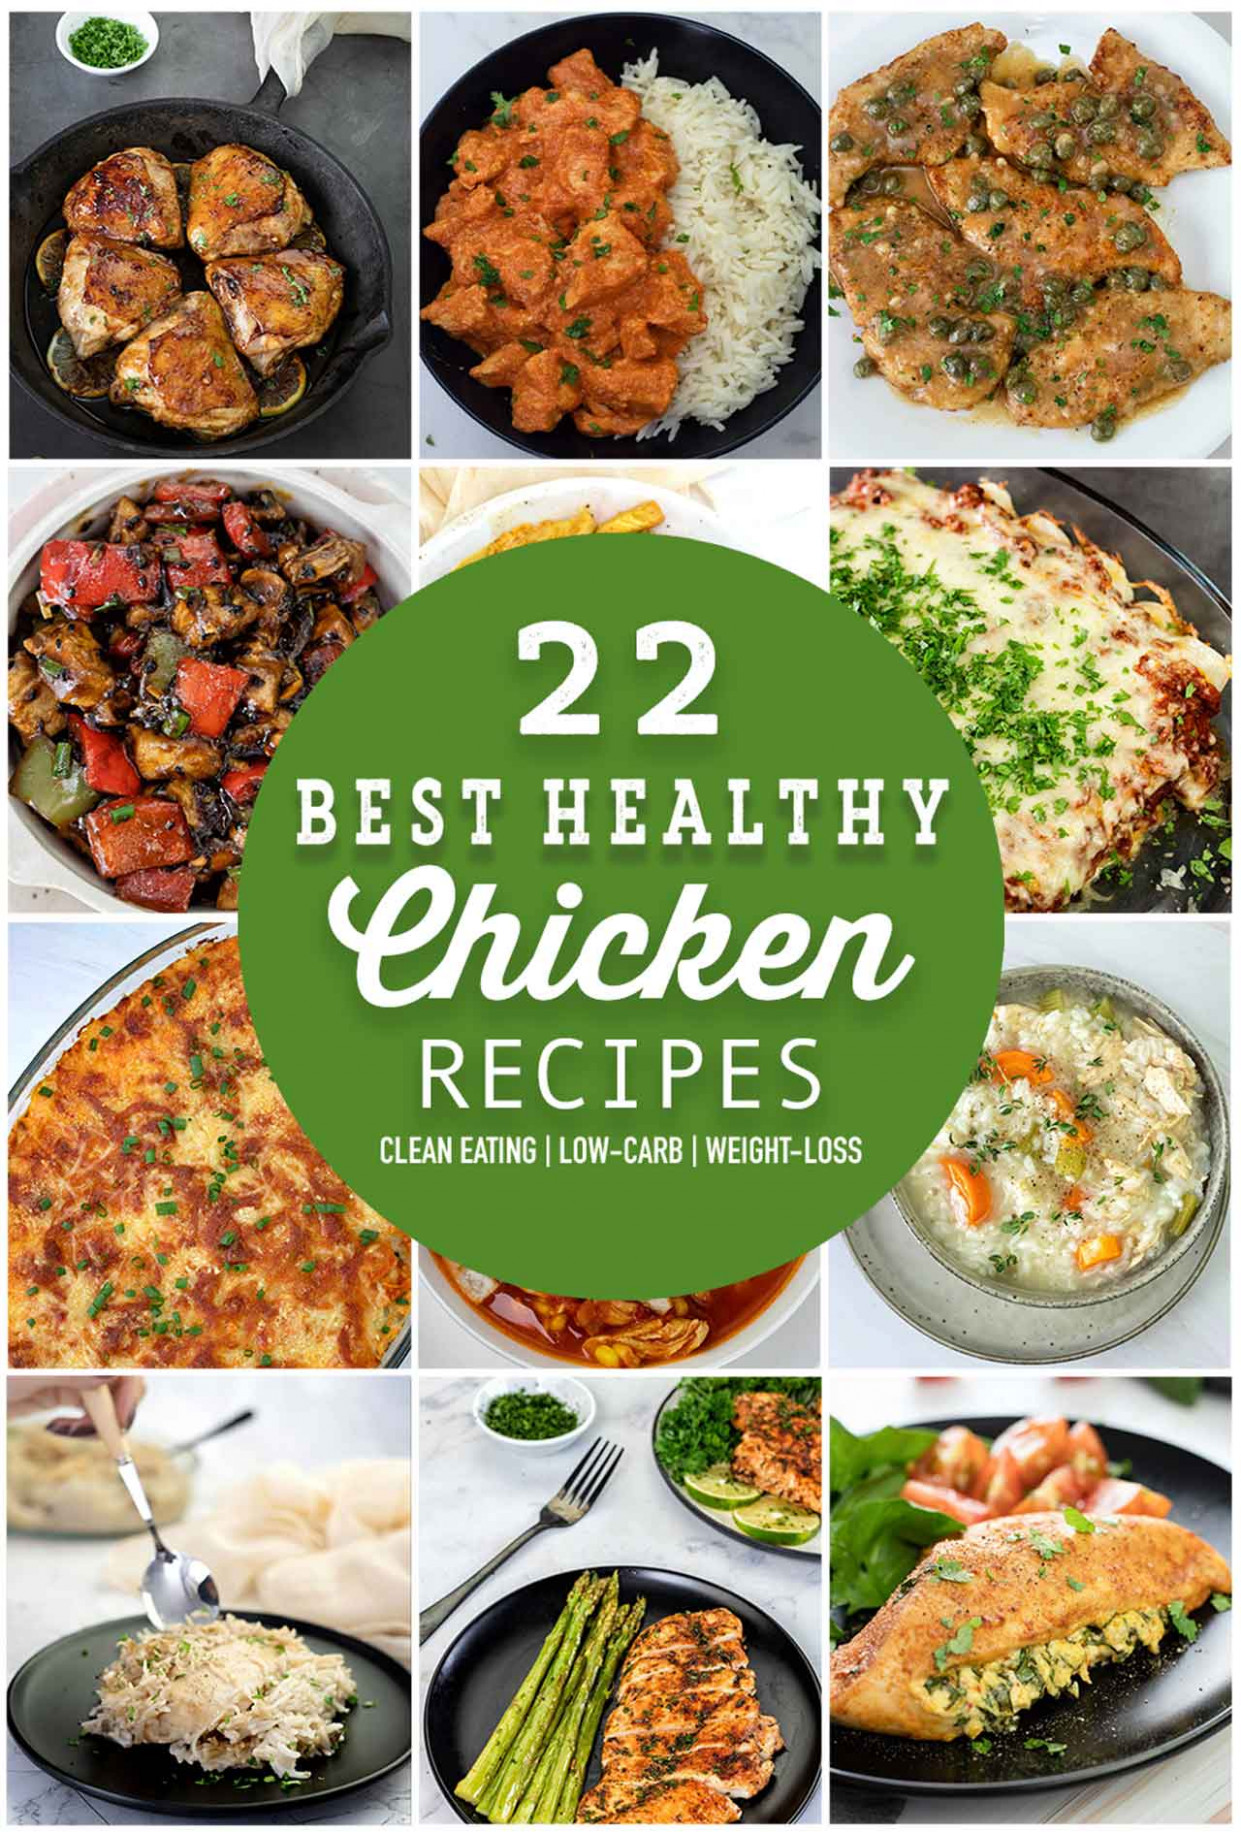 12 Best Healthy Chicken Recipes - A List For The White Meat ..